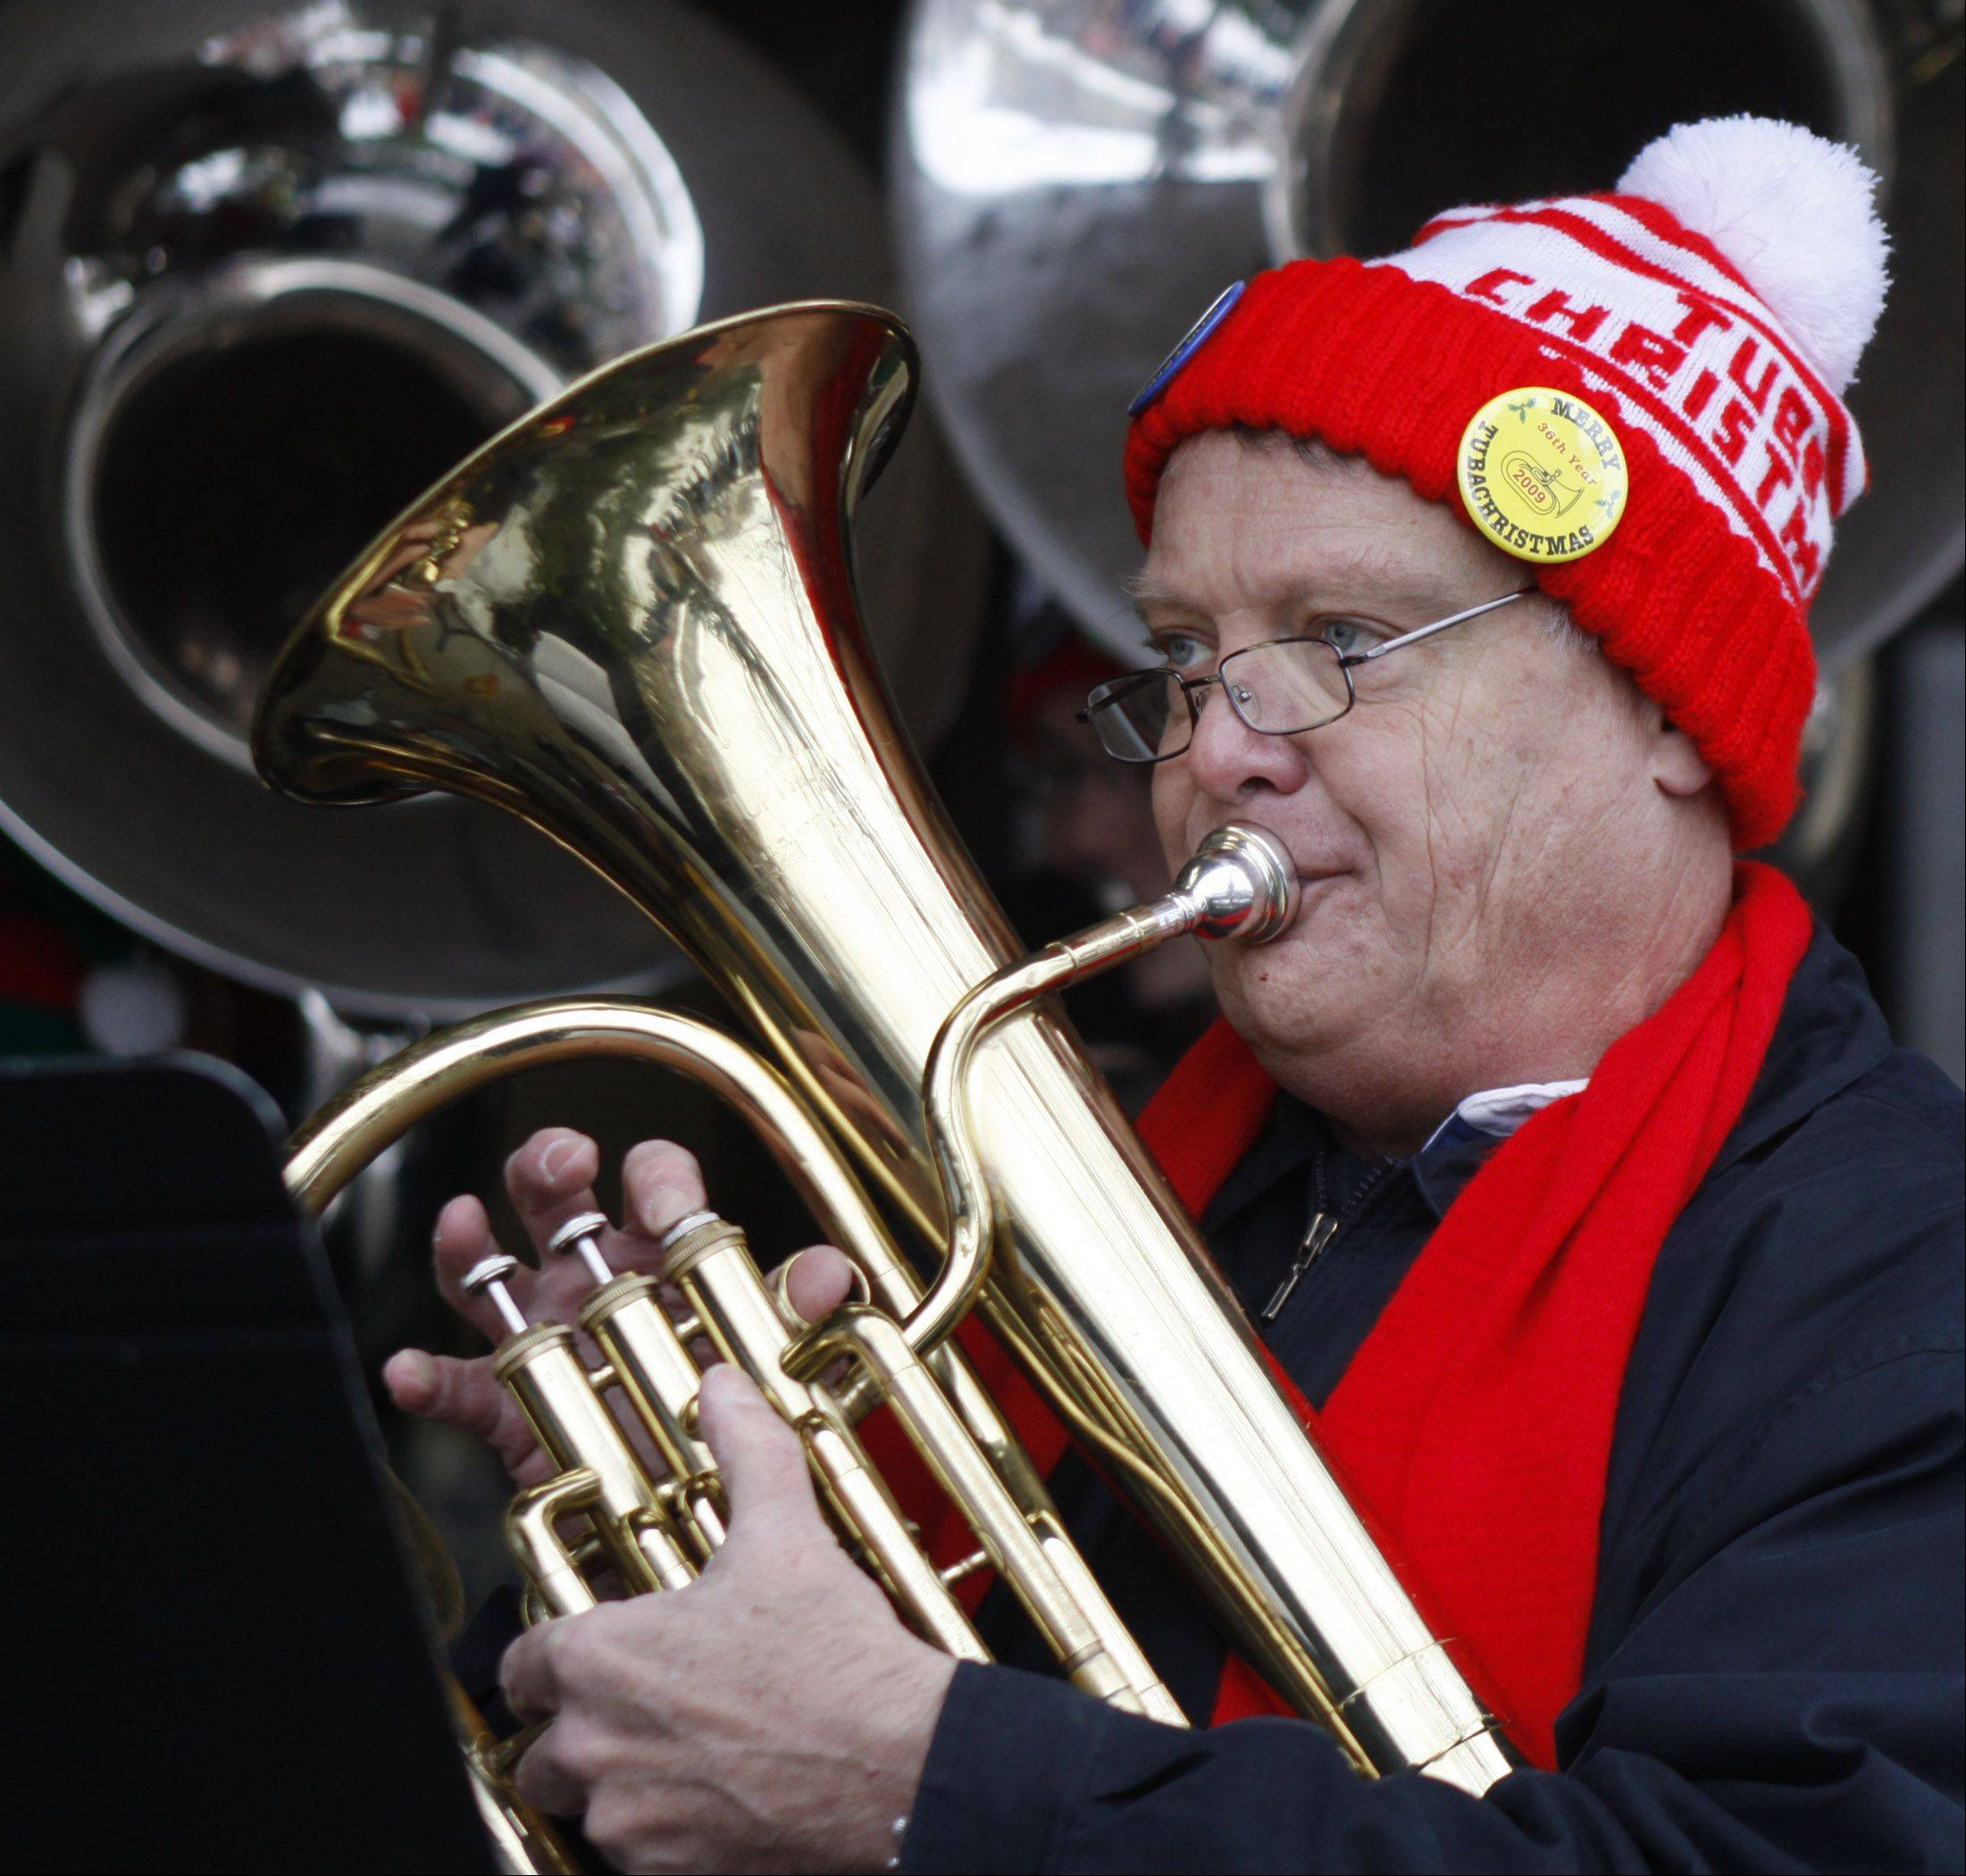 Tuba Christmas concert booms in the season in Naperville